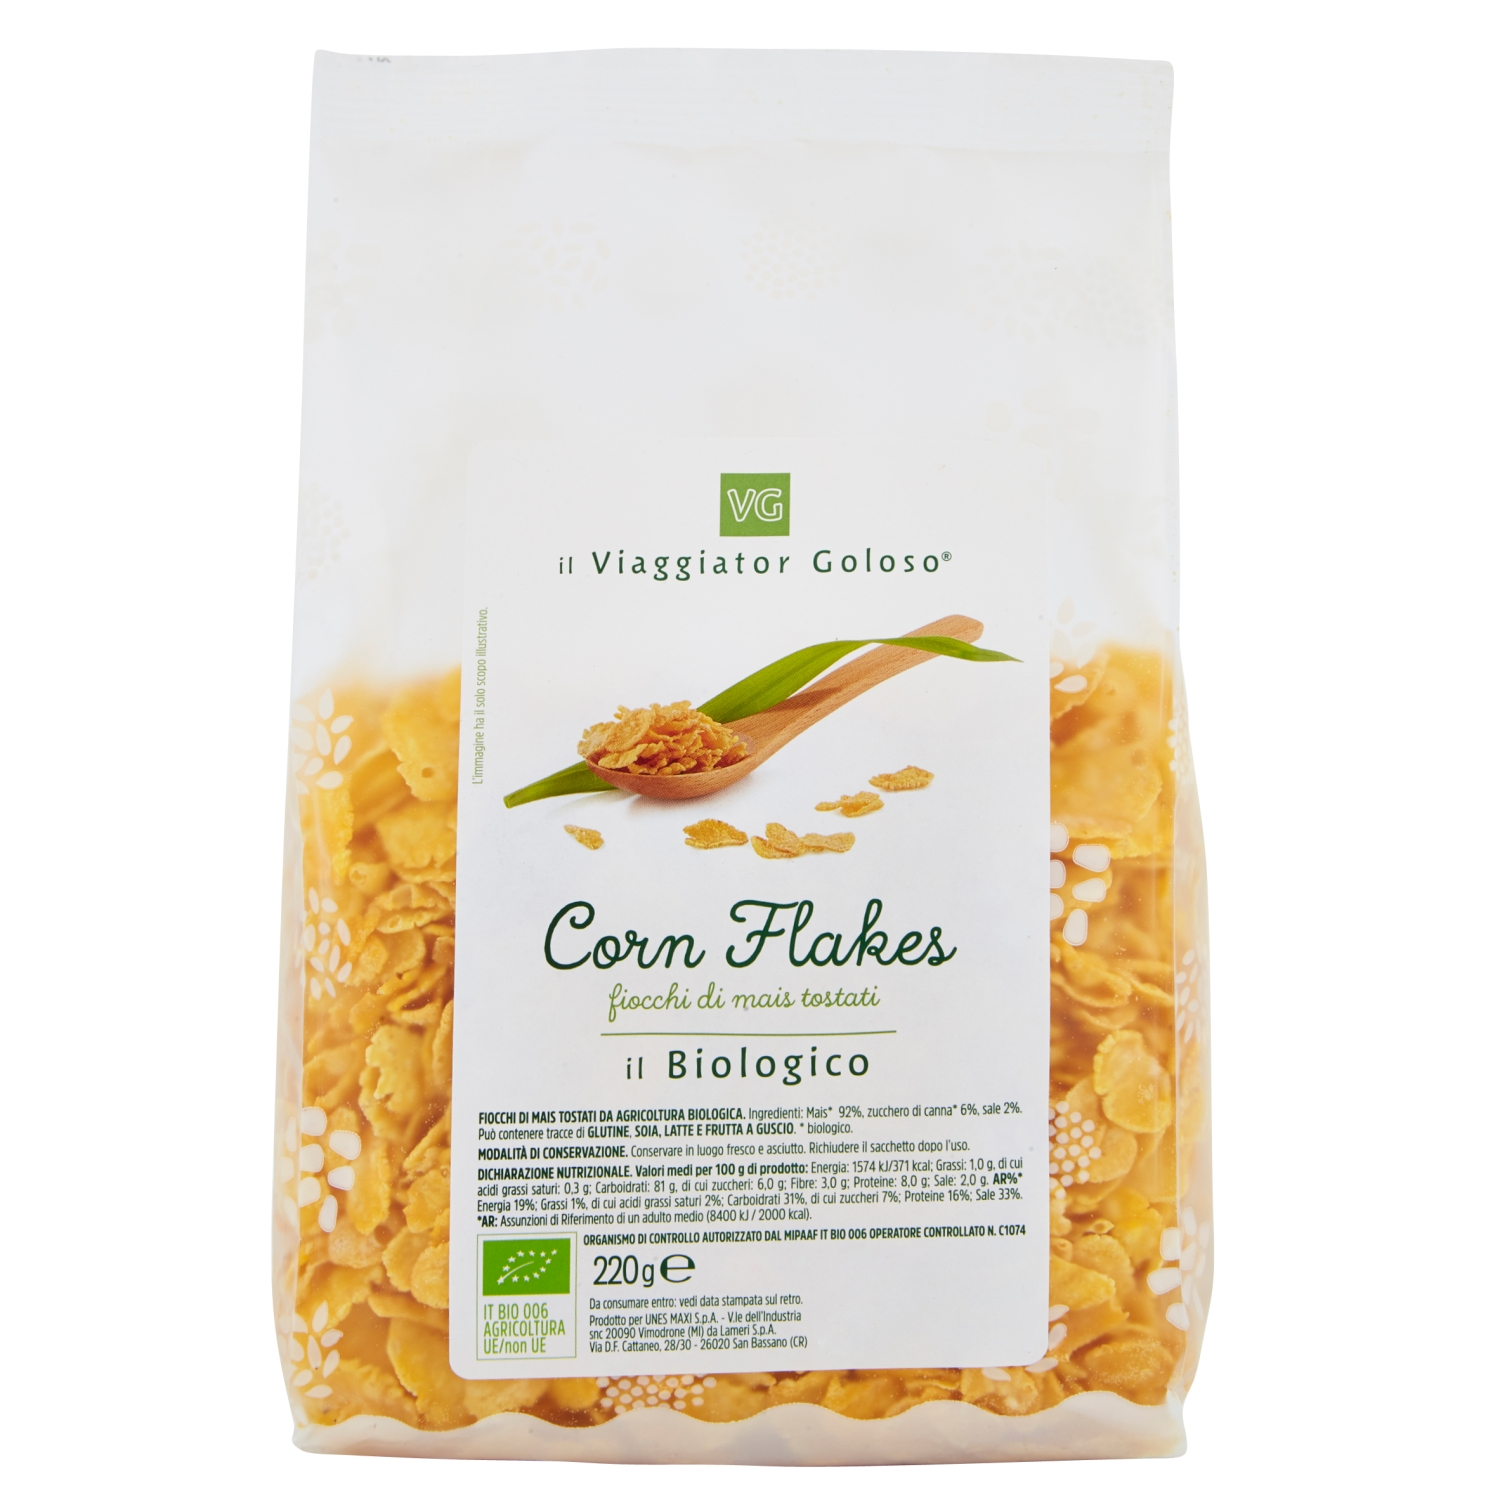 Corn Flakes Il Biologico